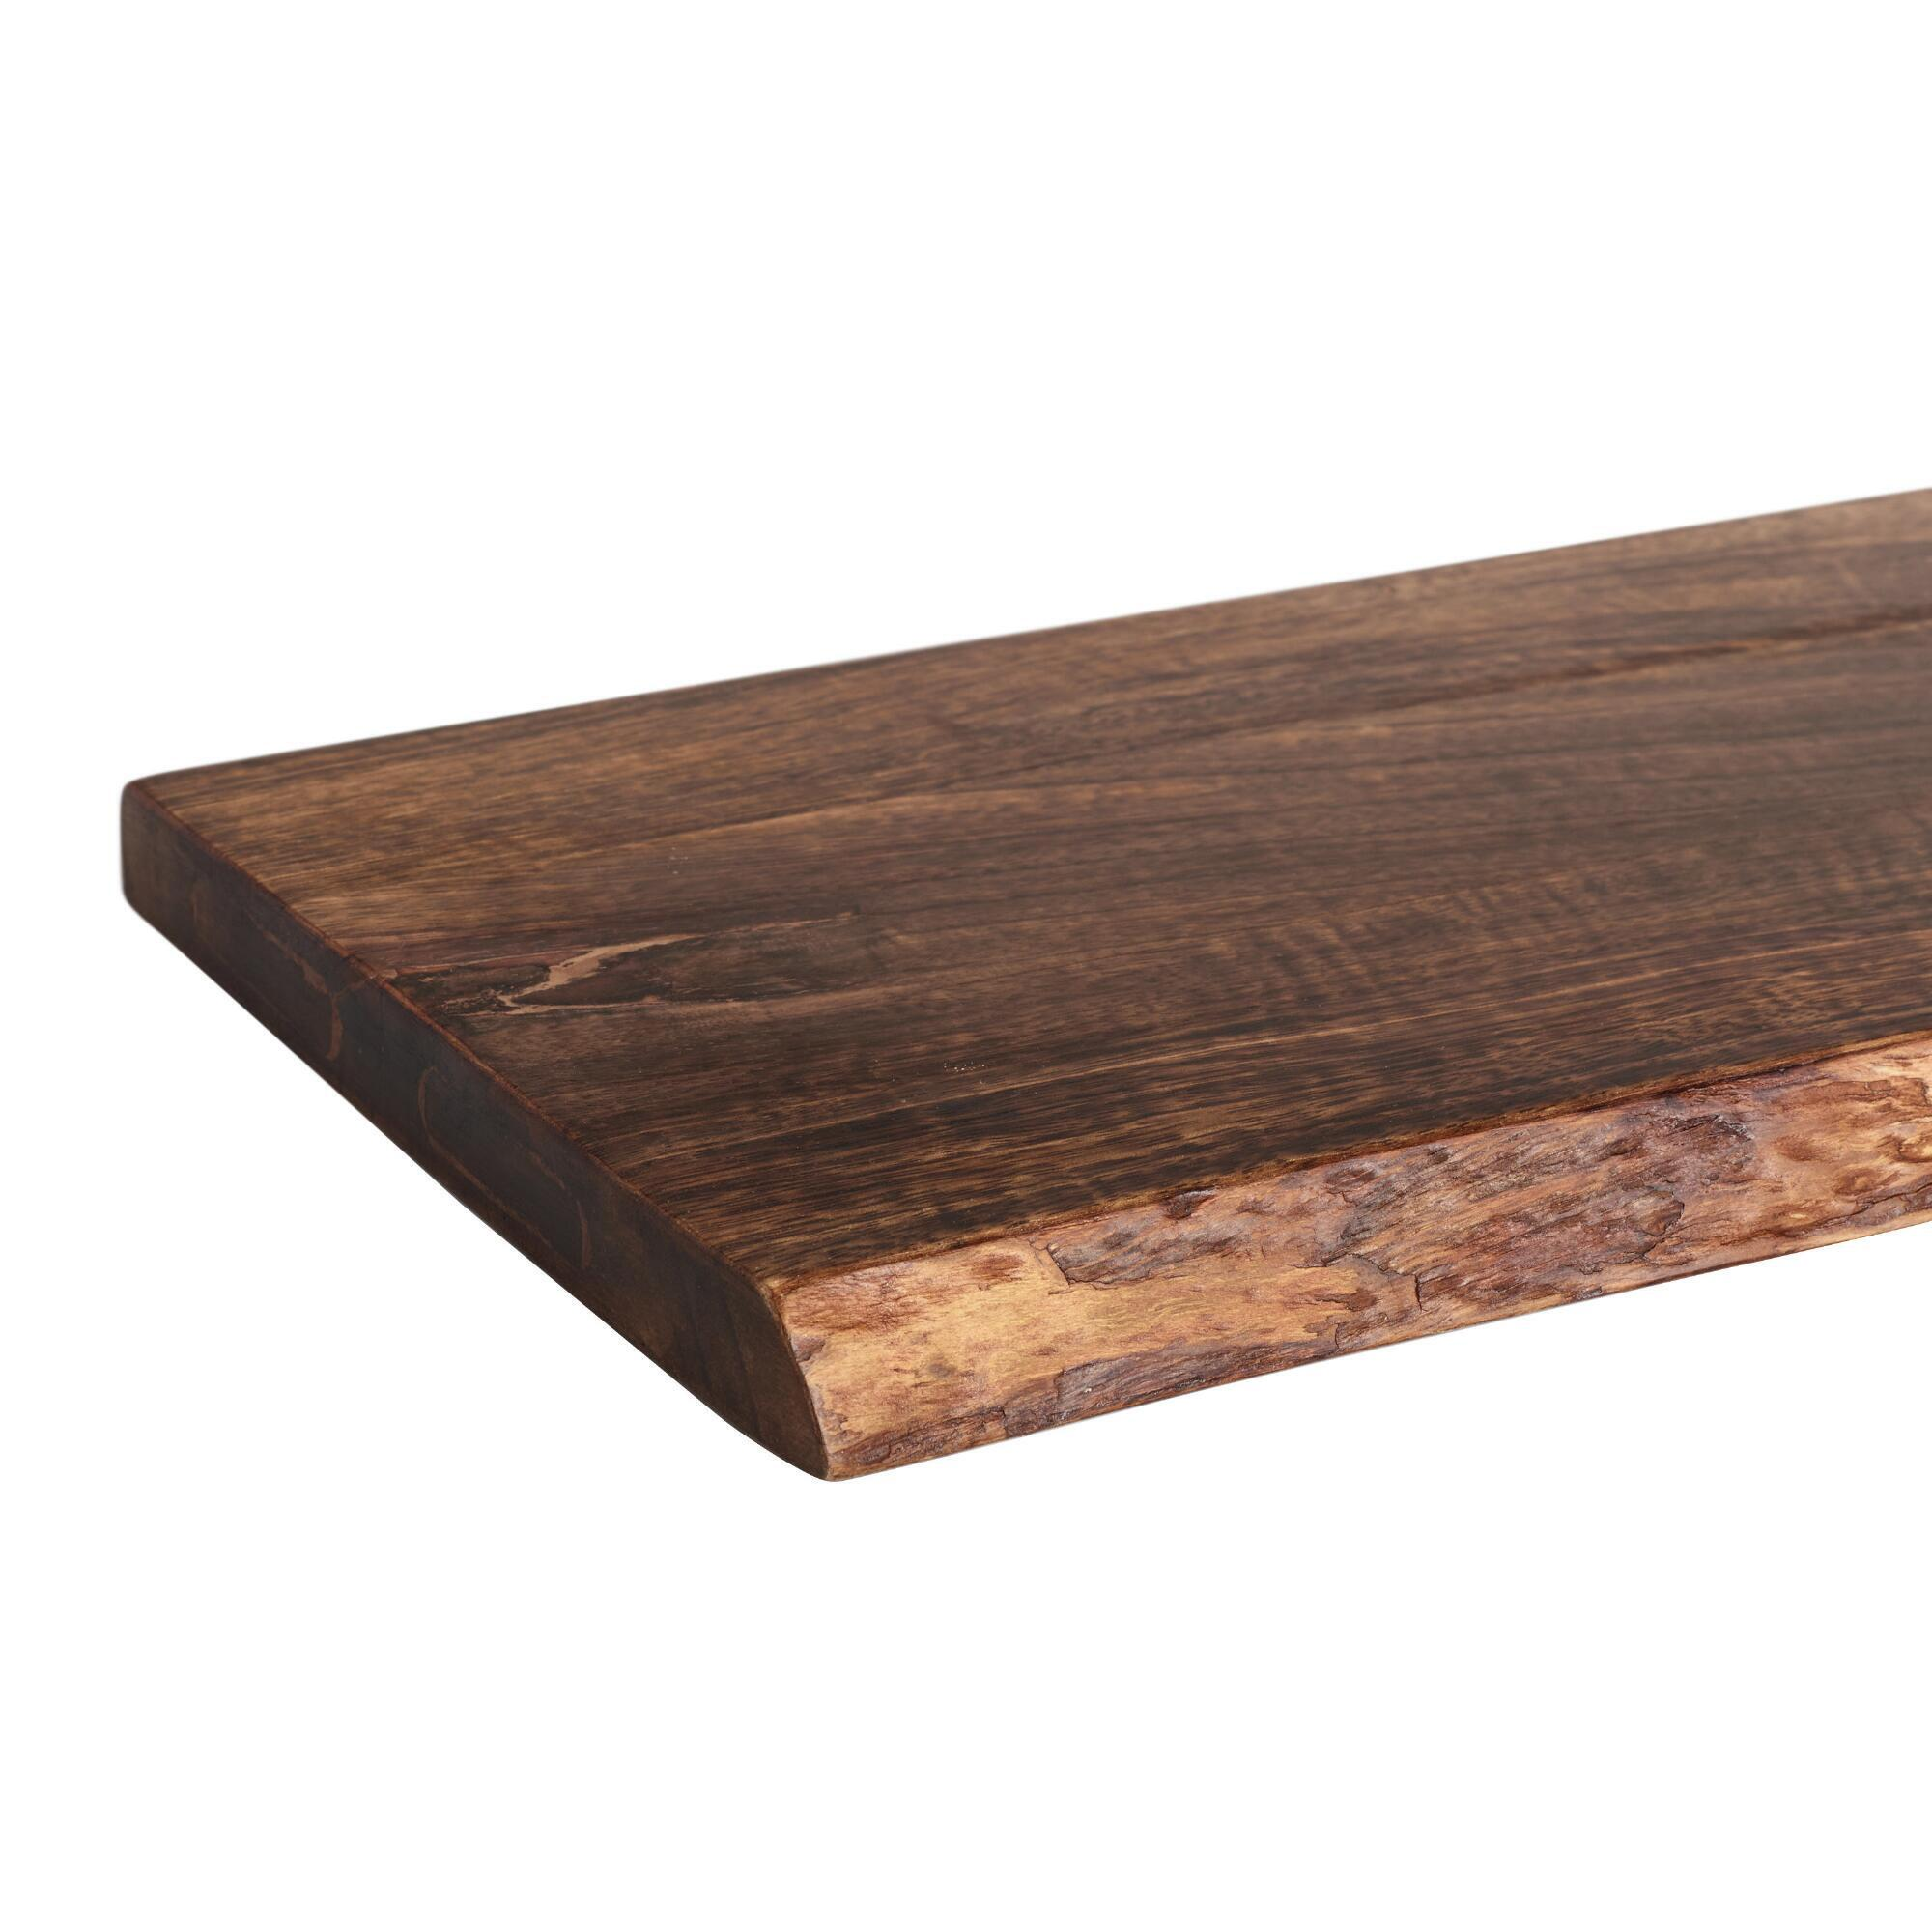 2 ft organic edge wood mix match wall shelf world market amipublicfo Gallery